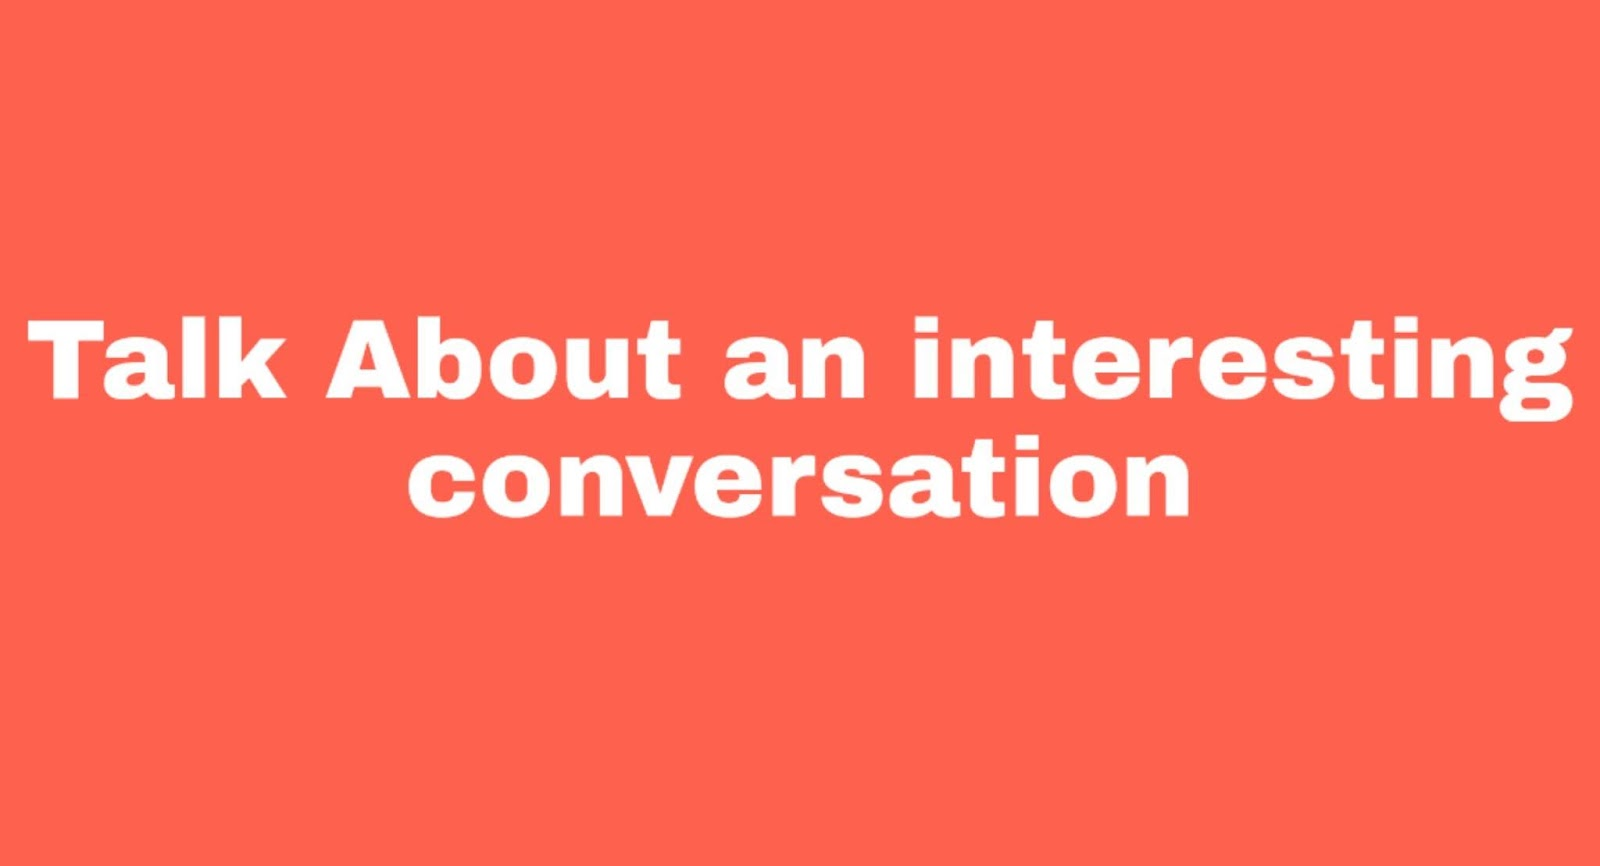 Cue Card: Talk About an Interesting conversation that you had